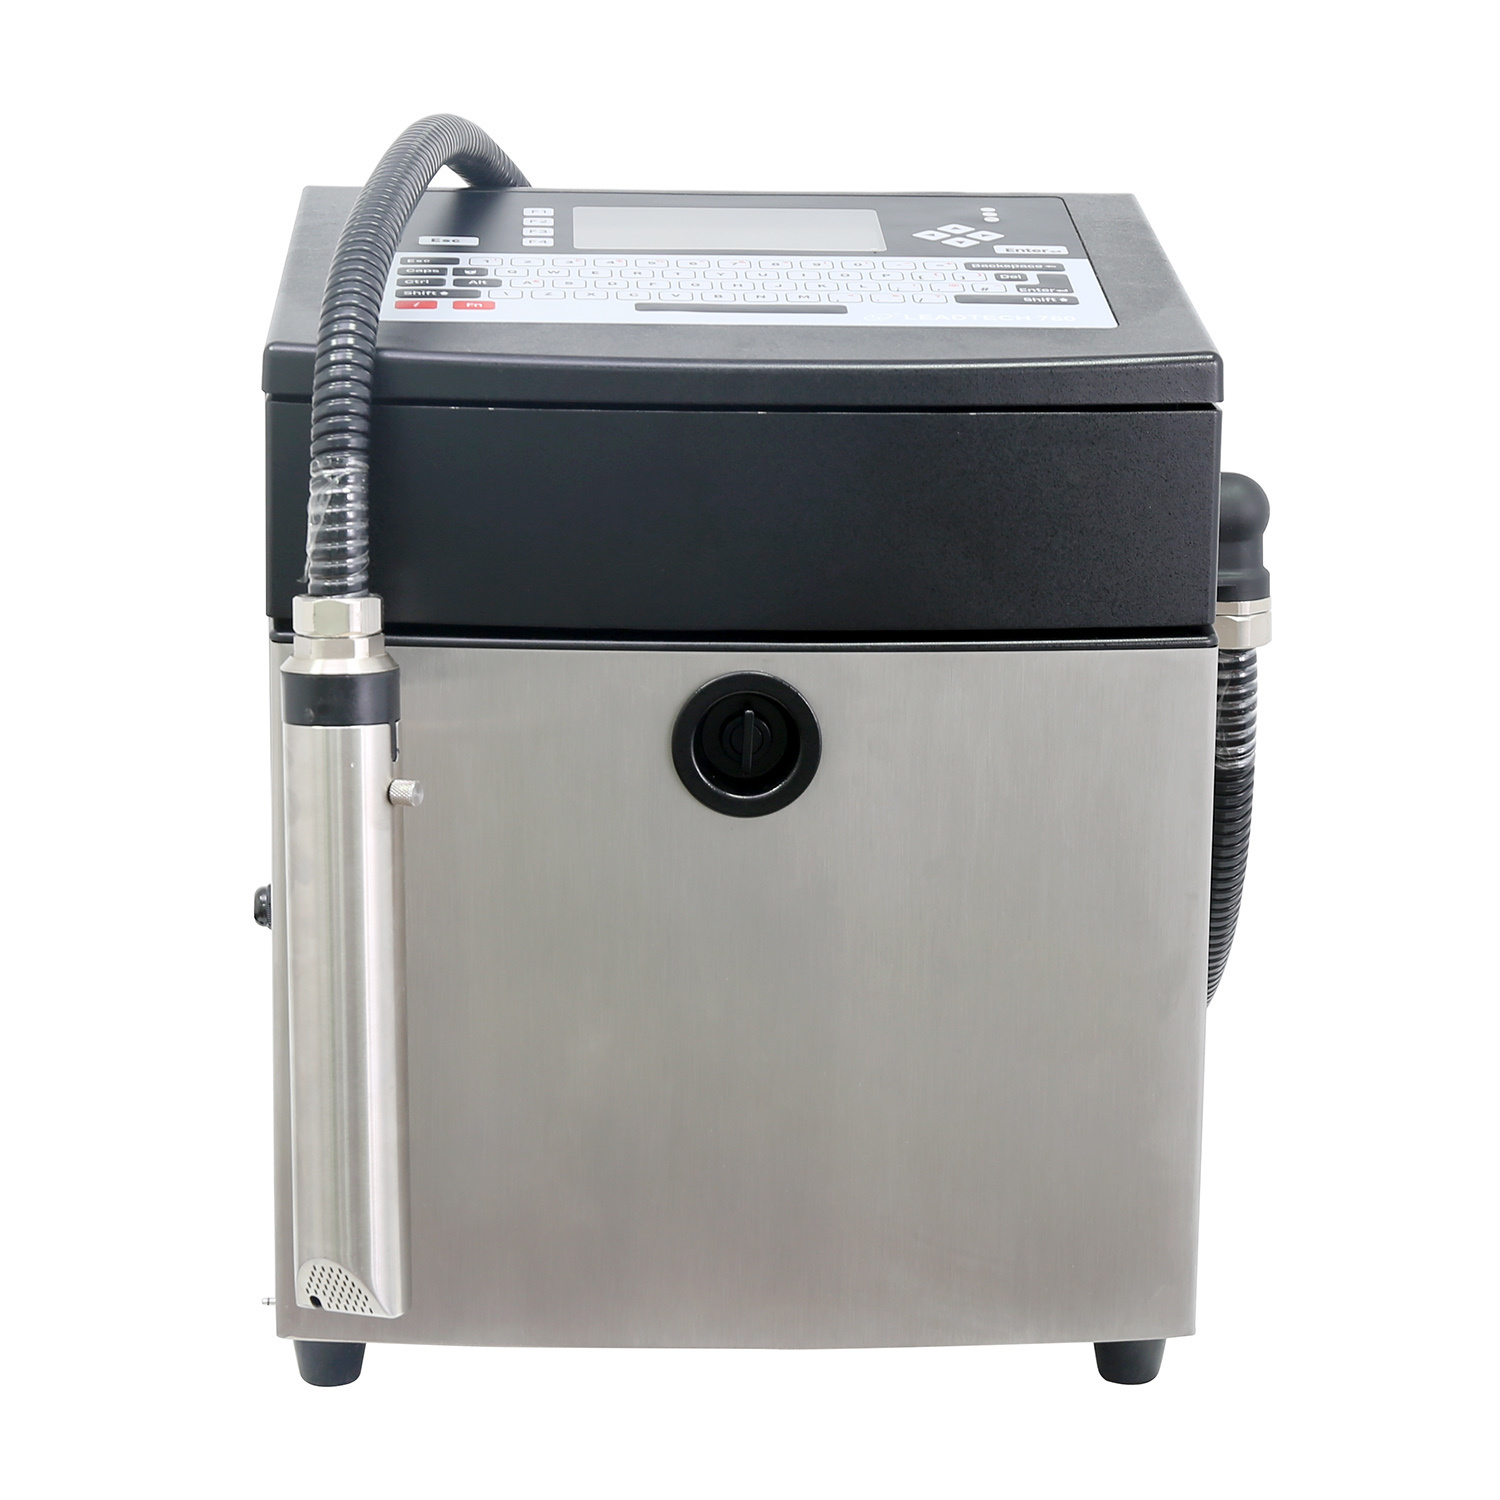 Lead Tech Lt760 Printer for Dates Printing